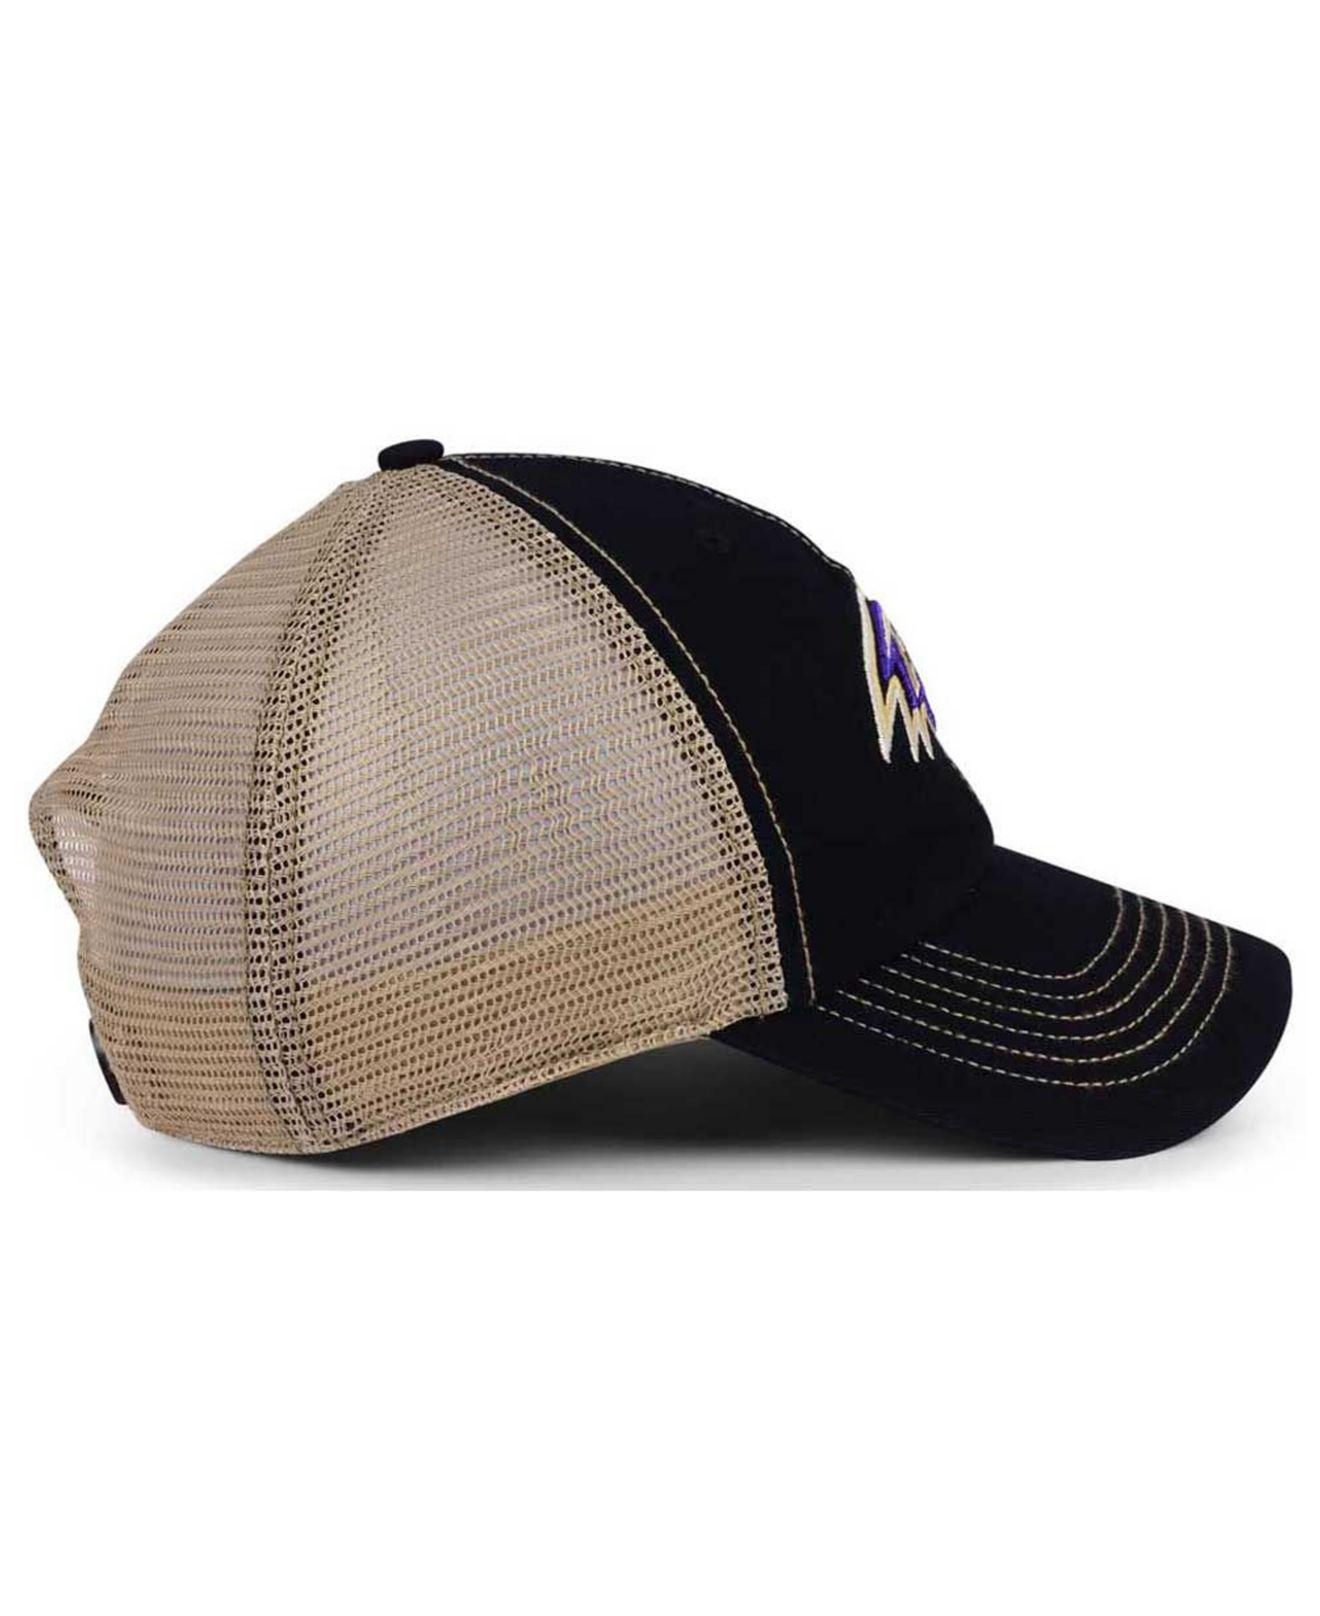 finest selection f52f6 5961c ... top quality free shipping 47 brand black trawler clean up cap for men  lyst. view